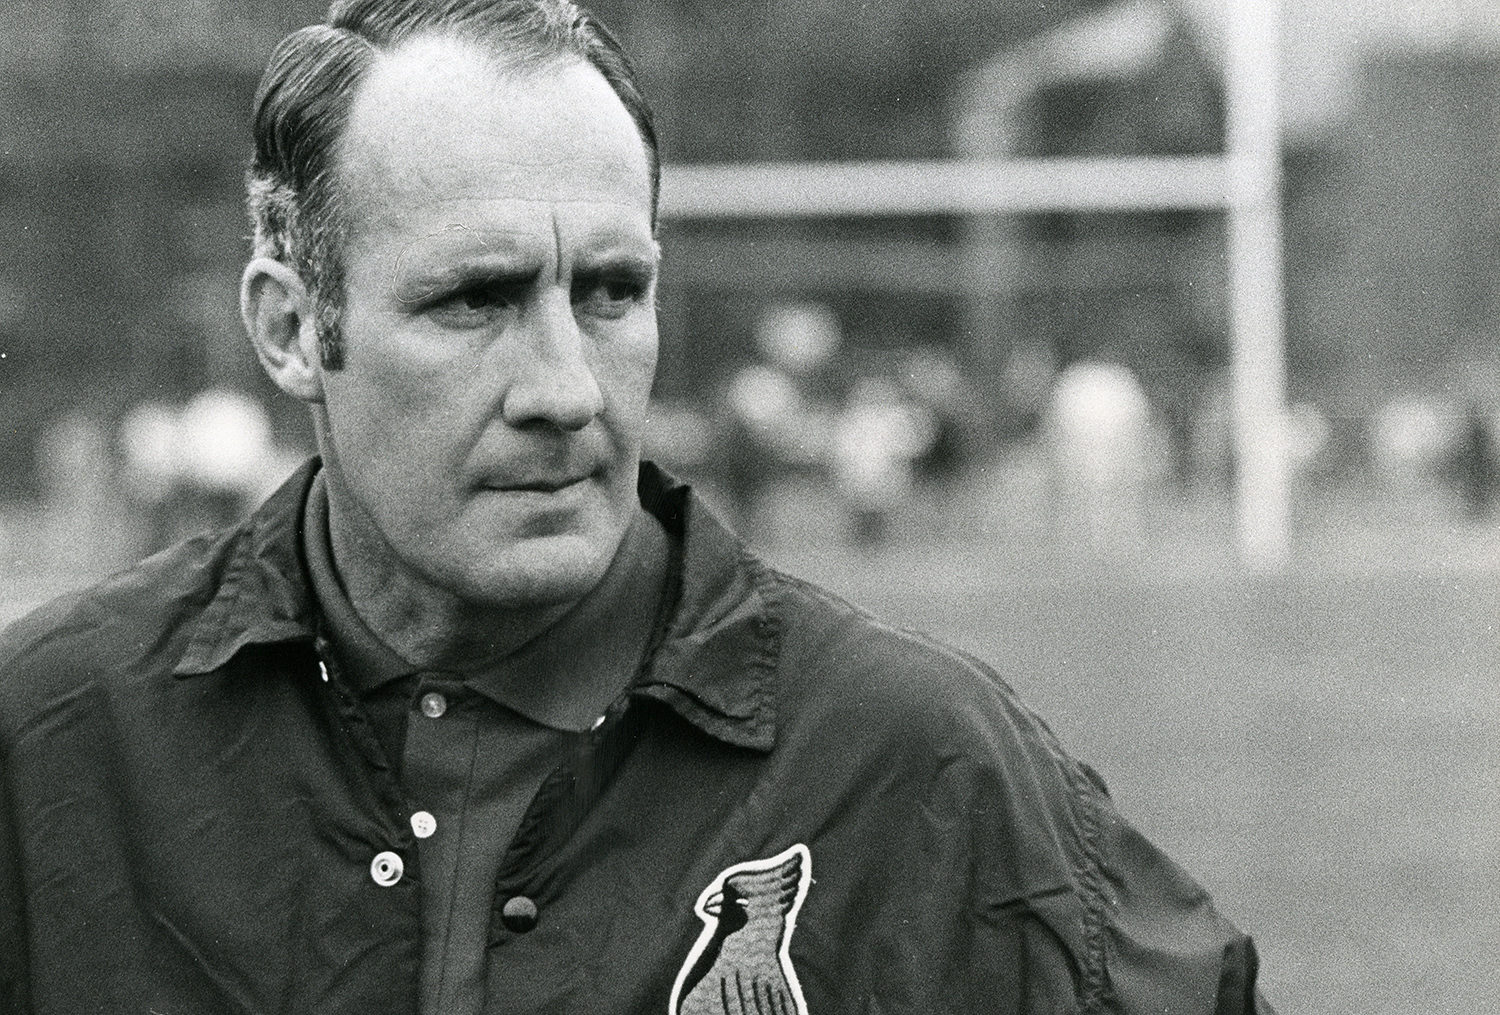 Coach Kenny will be inducted into the Middletown Athletic Hall of Fame.